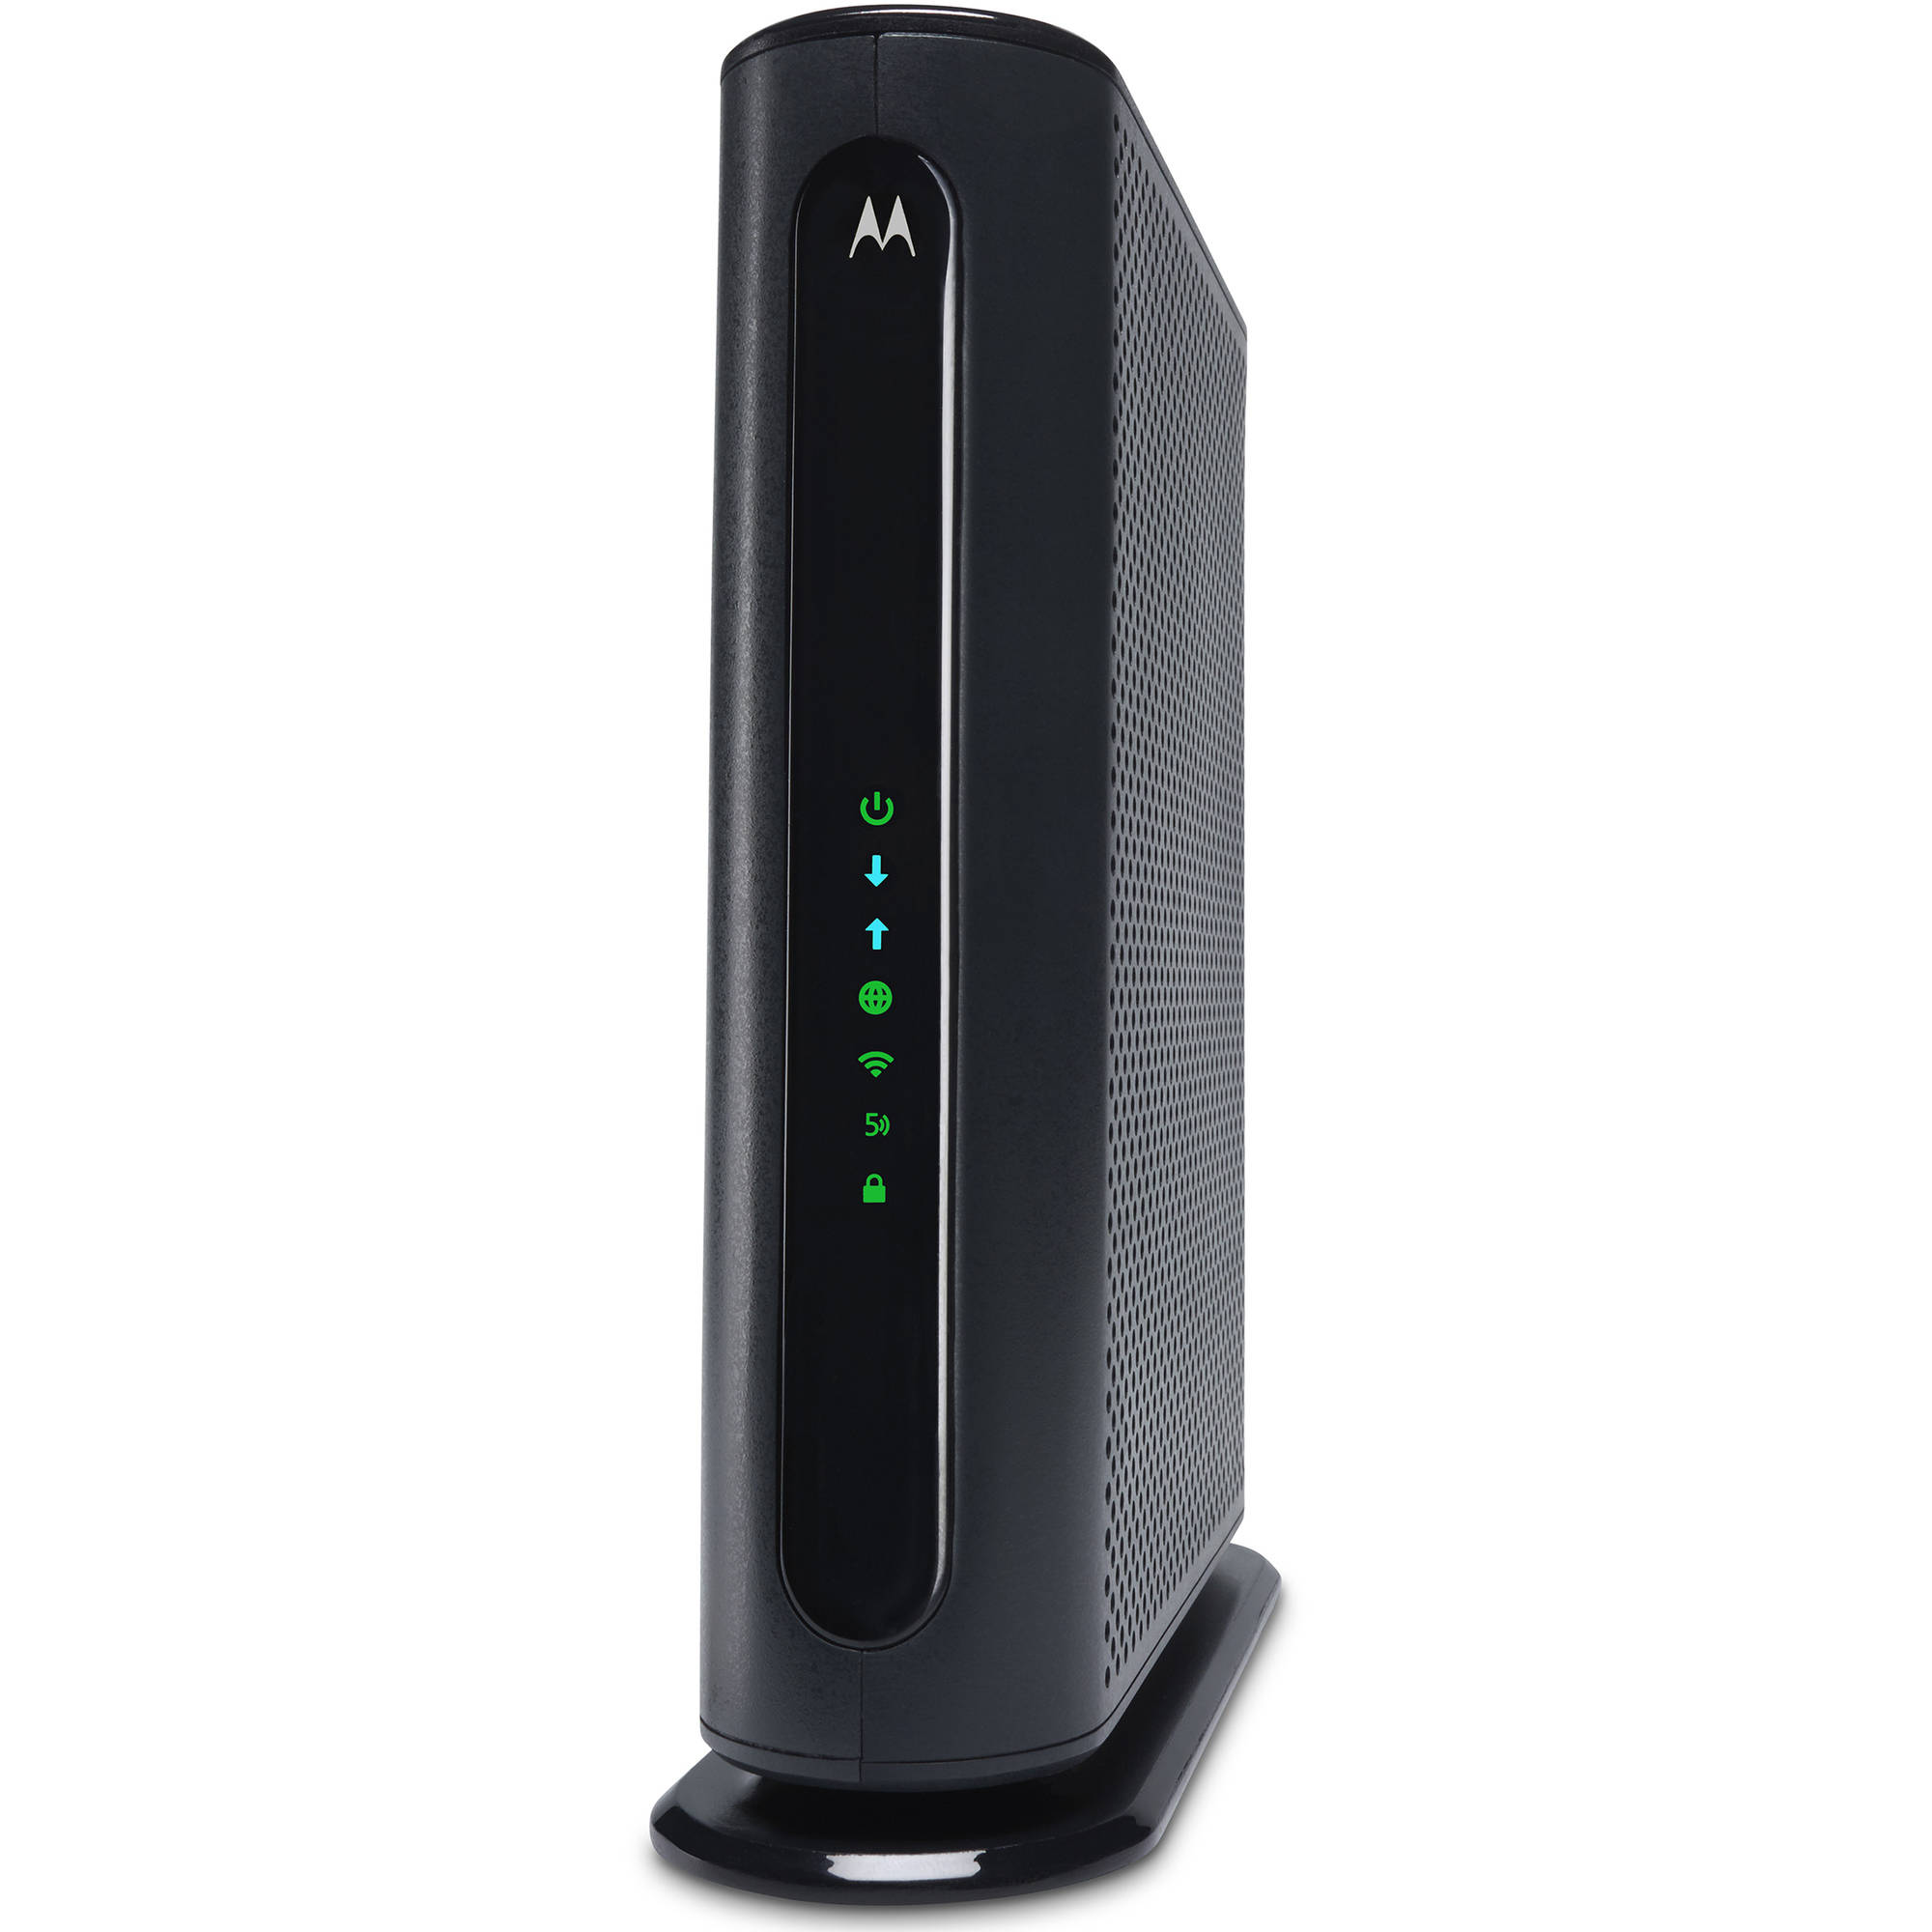 Motorola 16x4 Cable Modem + AC1900 WiFi Gigabit Router with Power Boost, MG7550